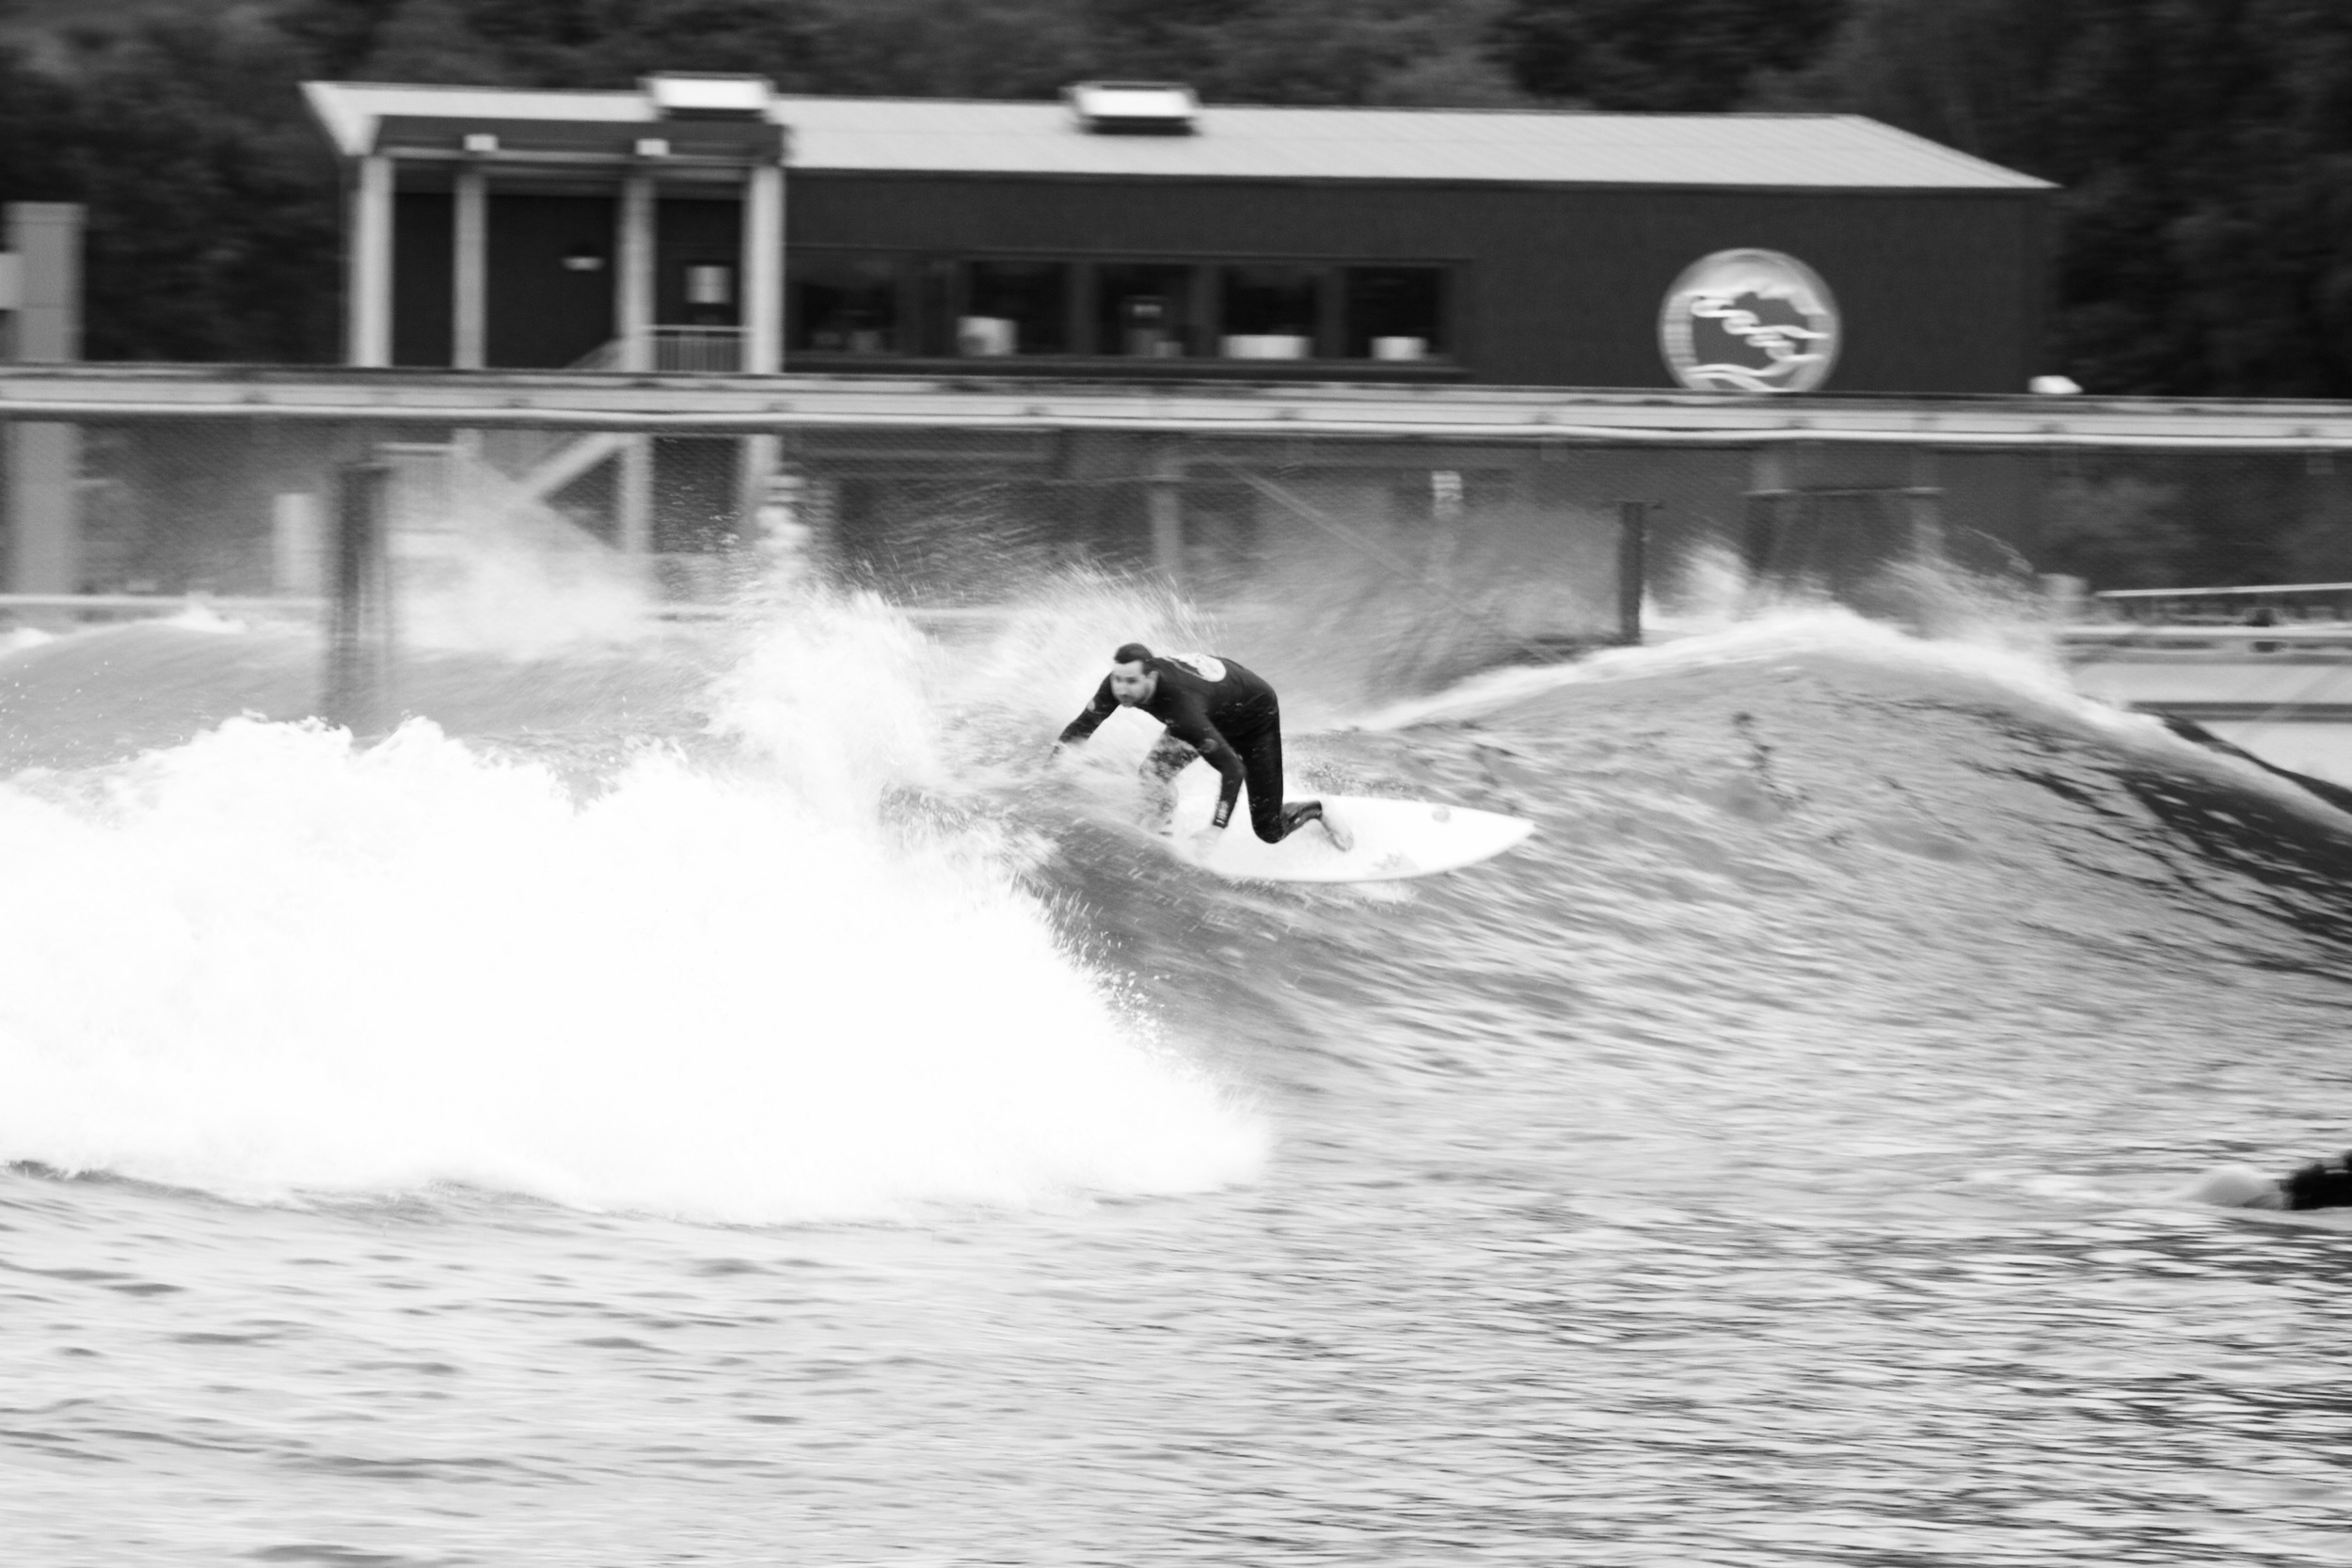 Brucey also rips. Forever has he ripped. Perpetually will he rip. Style, flow, attack, #bam. He never wastes a wave.